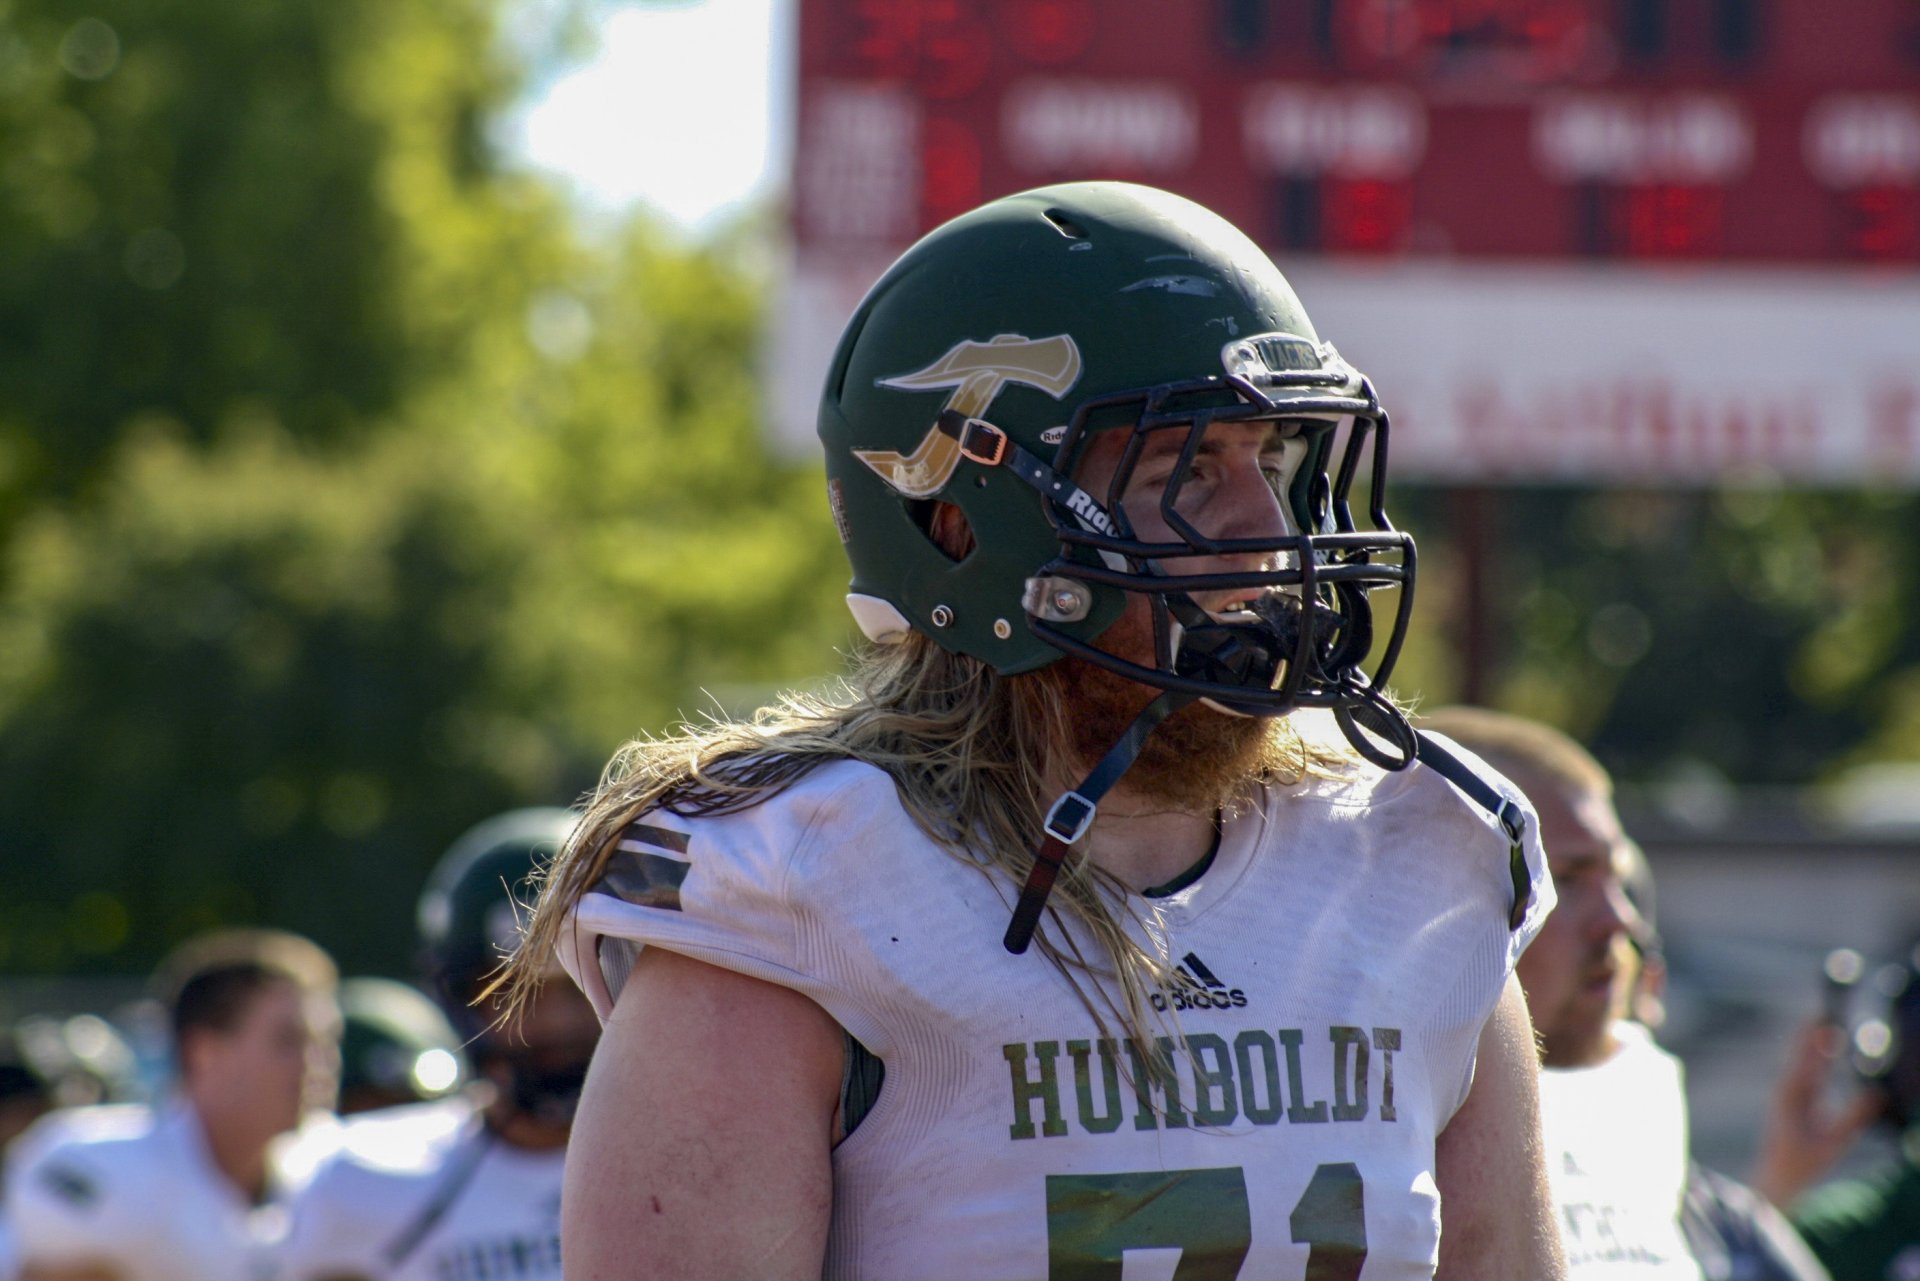 Jacks star offensive lineman was drafted 94th overall in the 2018 NFL draft. Cappa is the highest selection in HSU history. Photo by: Skye Kimya